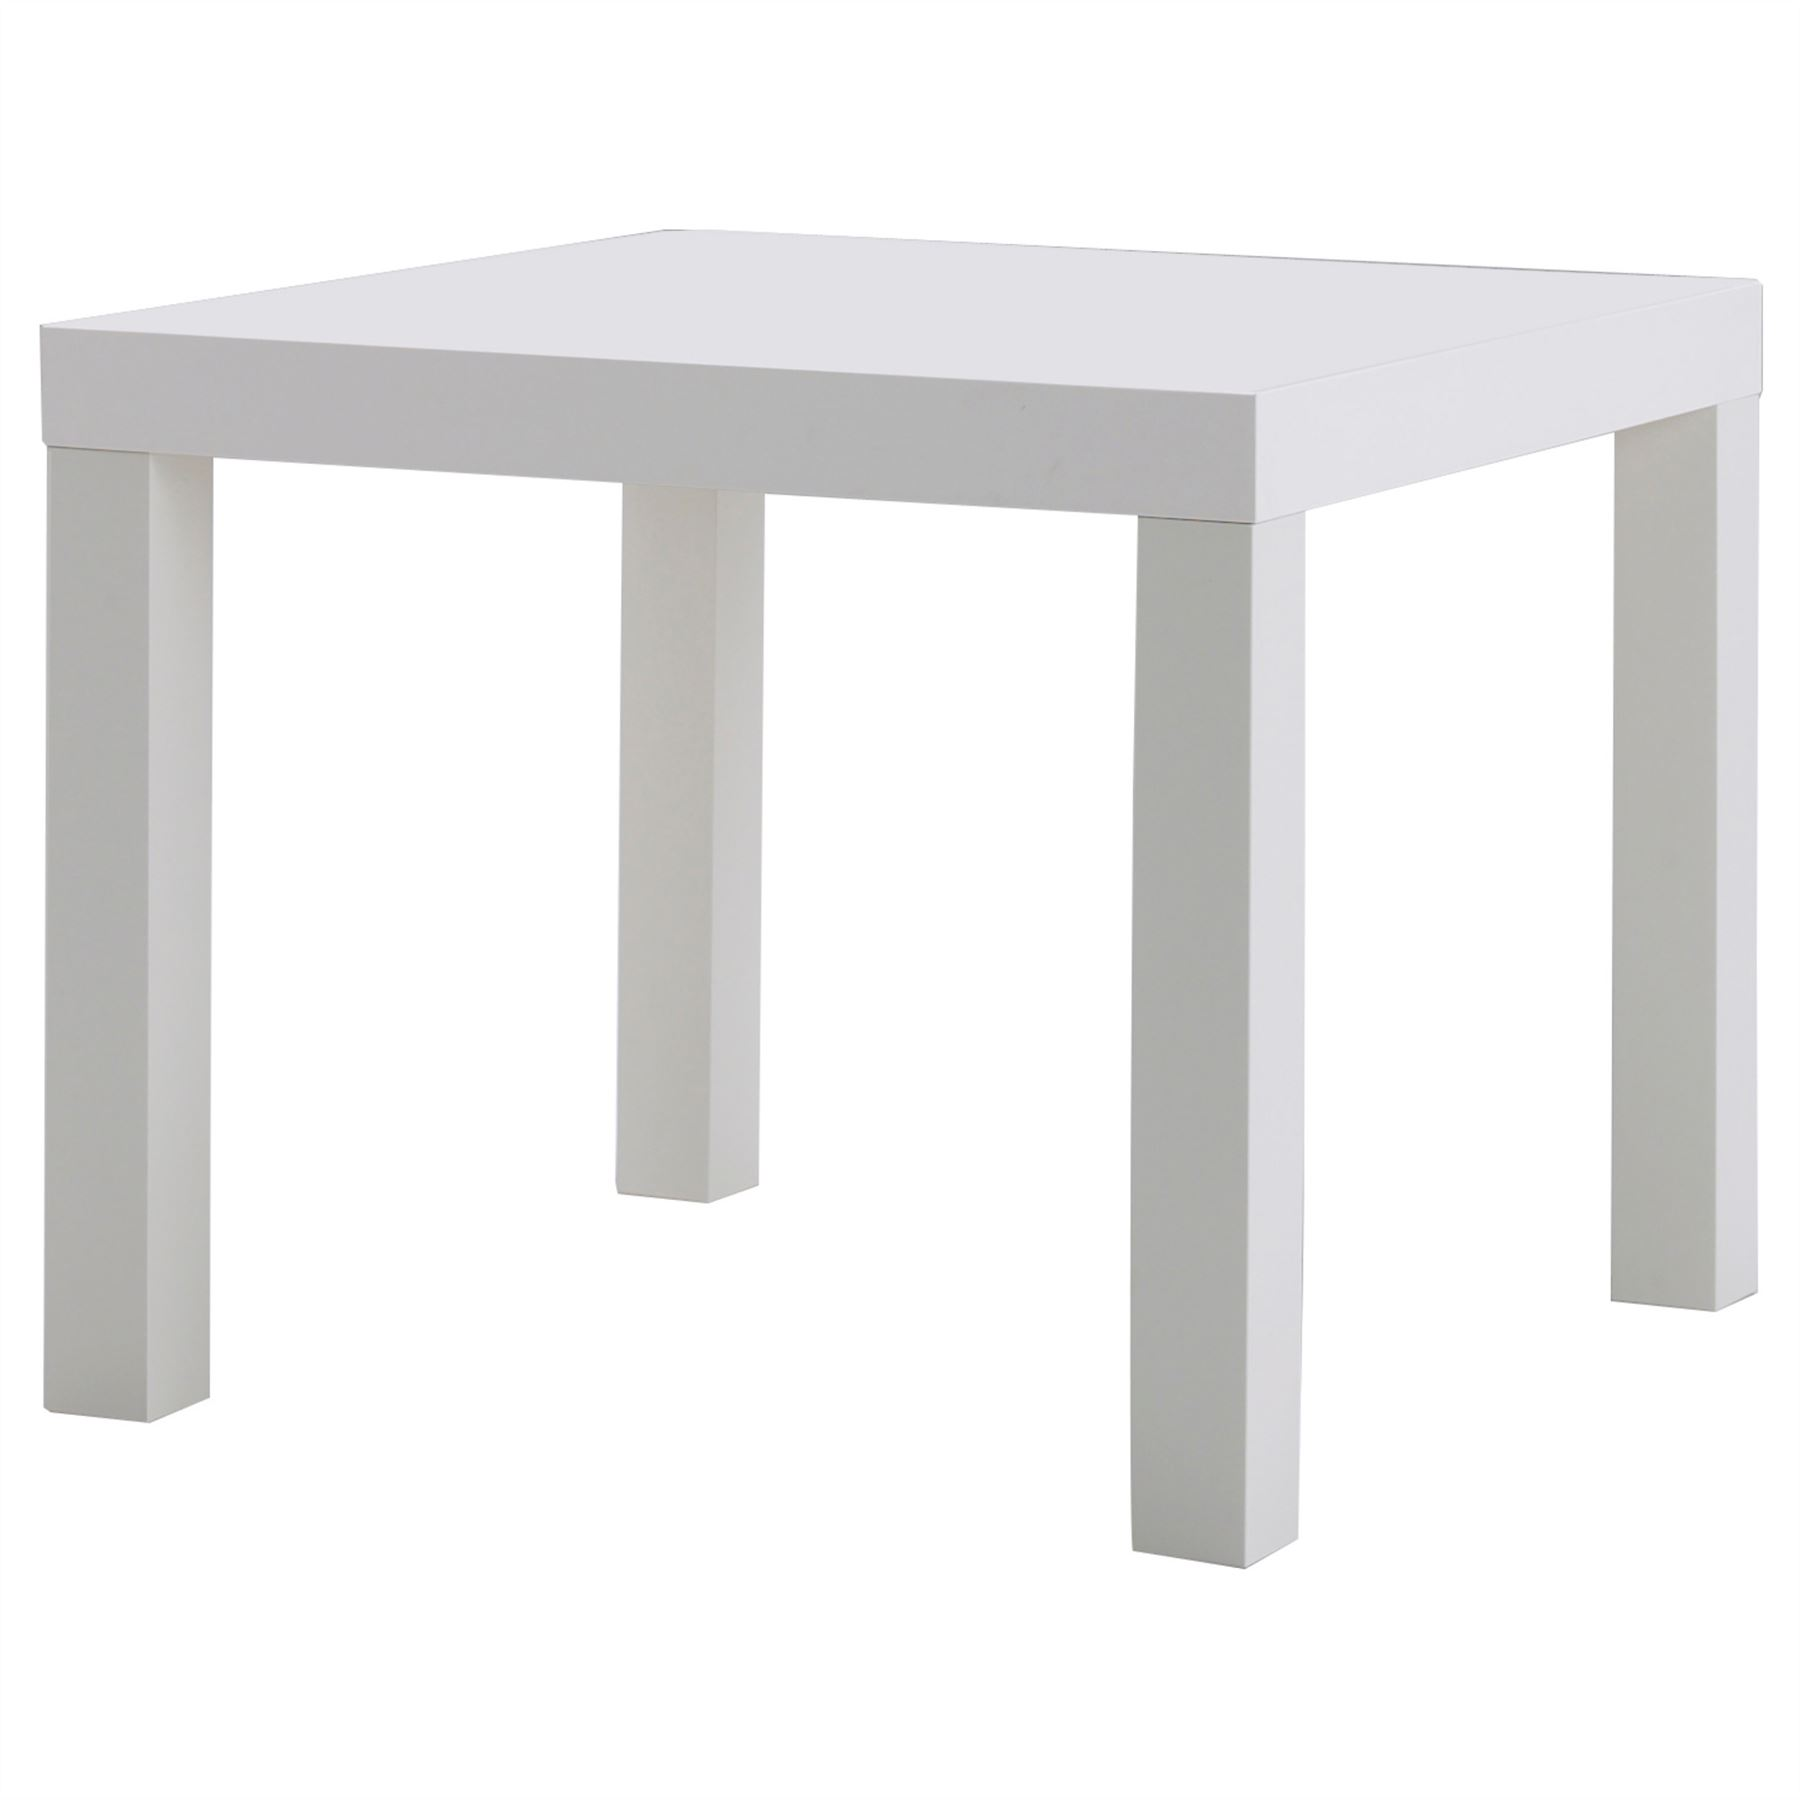 Ikea Lack Side Table End Display 55cm Square Small Coffee Table